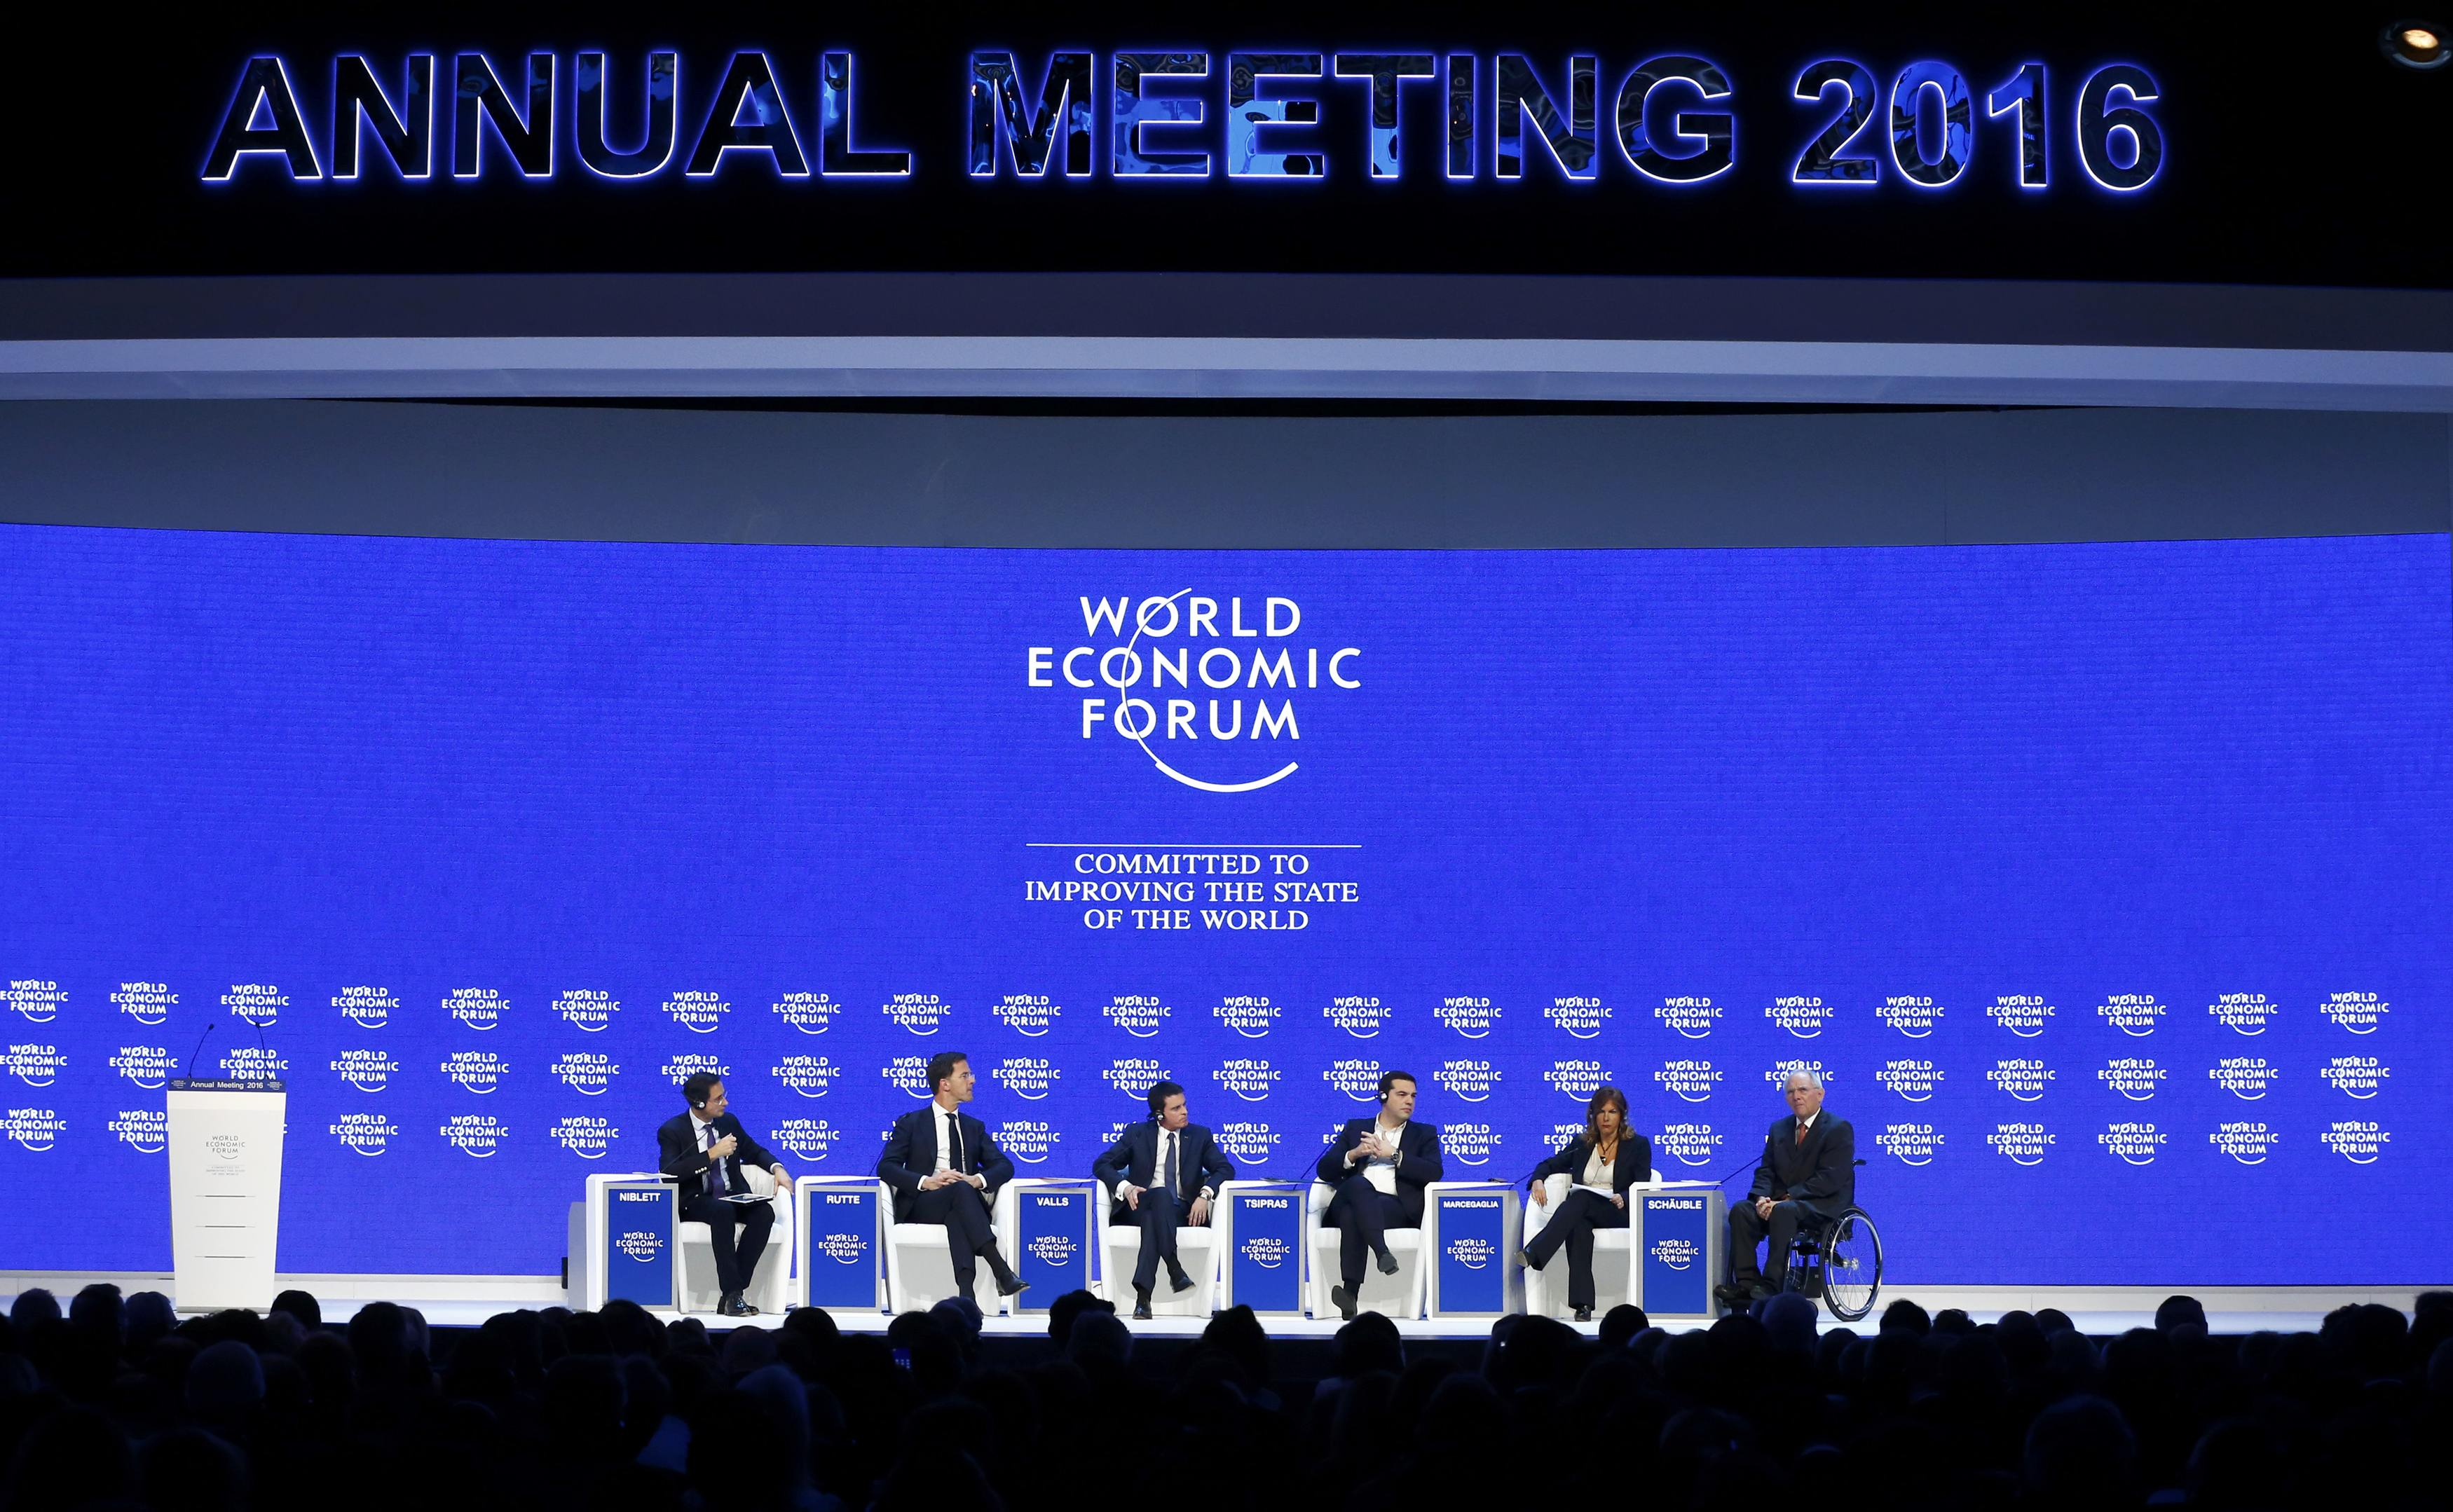 Participants attend the session 'The Future of Europe' at the annual meeting of the World Economic Forum (WEF) in Davos, Switzerland January 21, 2016. Pictured are (L-R) Robin Niblett, Director, Chatham House, Netherlands Prime Minister Mark Rutte, French Prime Minister Manuel Valls, Greek Prime Minister Alexis Tsipras, Emma Marcegaglia, Chairman, Eni, and German Finance Minister Wolfgang Schaeuble. REUTERS/Ruben Sprich